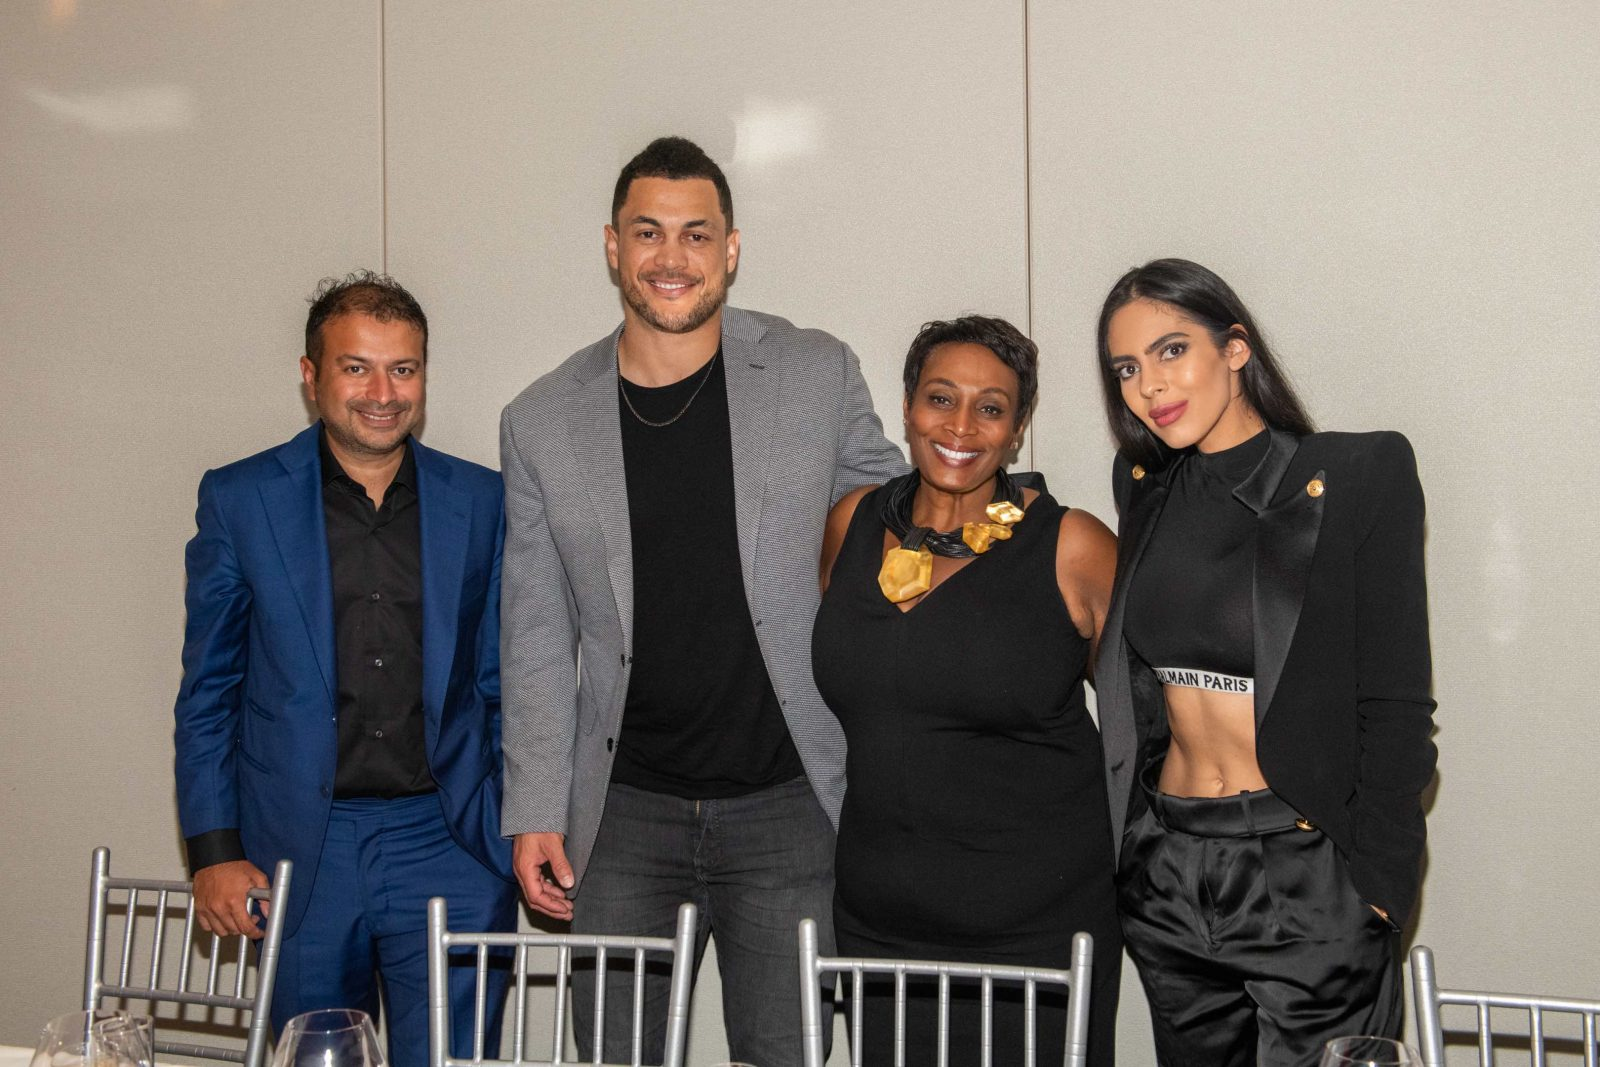 Kamal Hotchandani, Giancarlo Stanton, Julia Brown and Deyvanshi Masrani